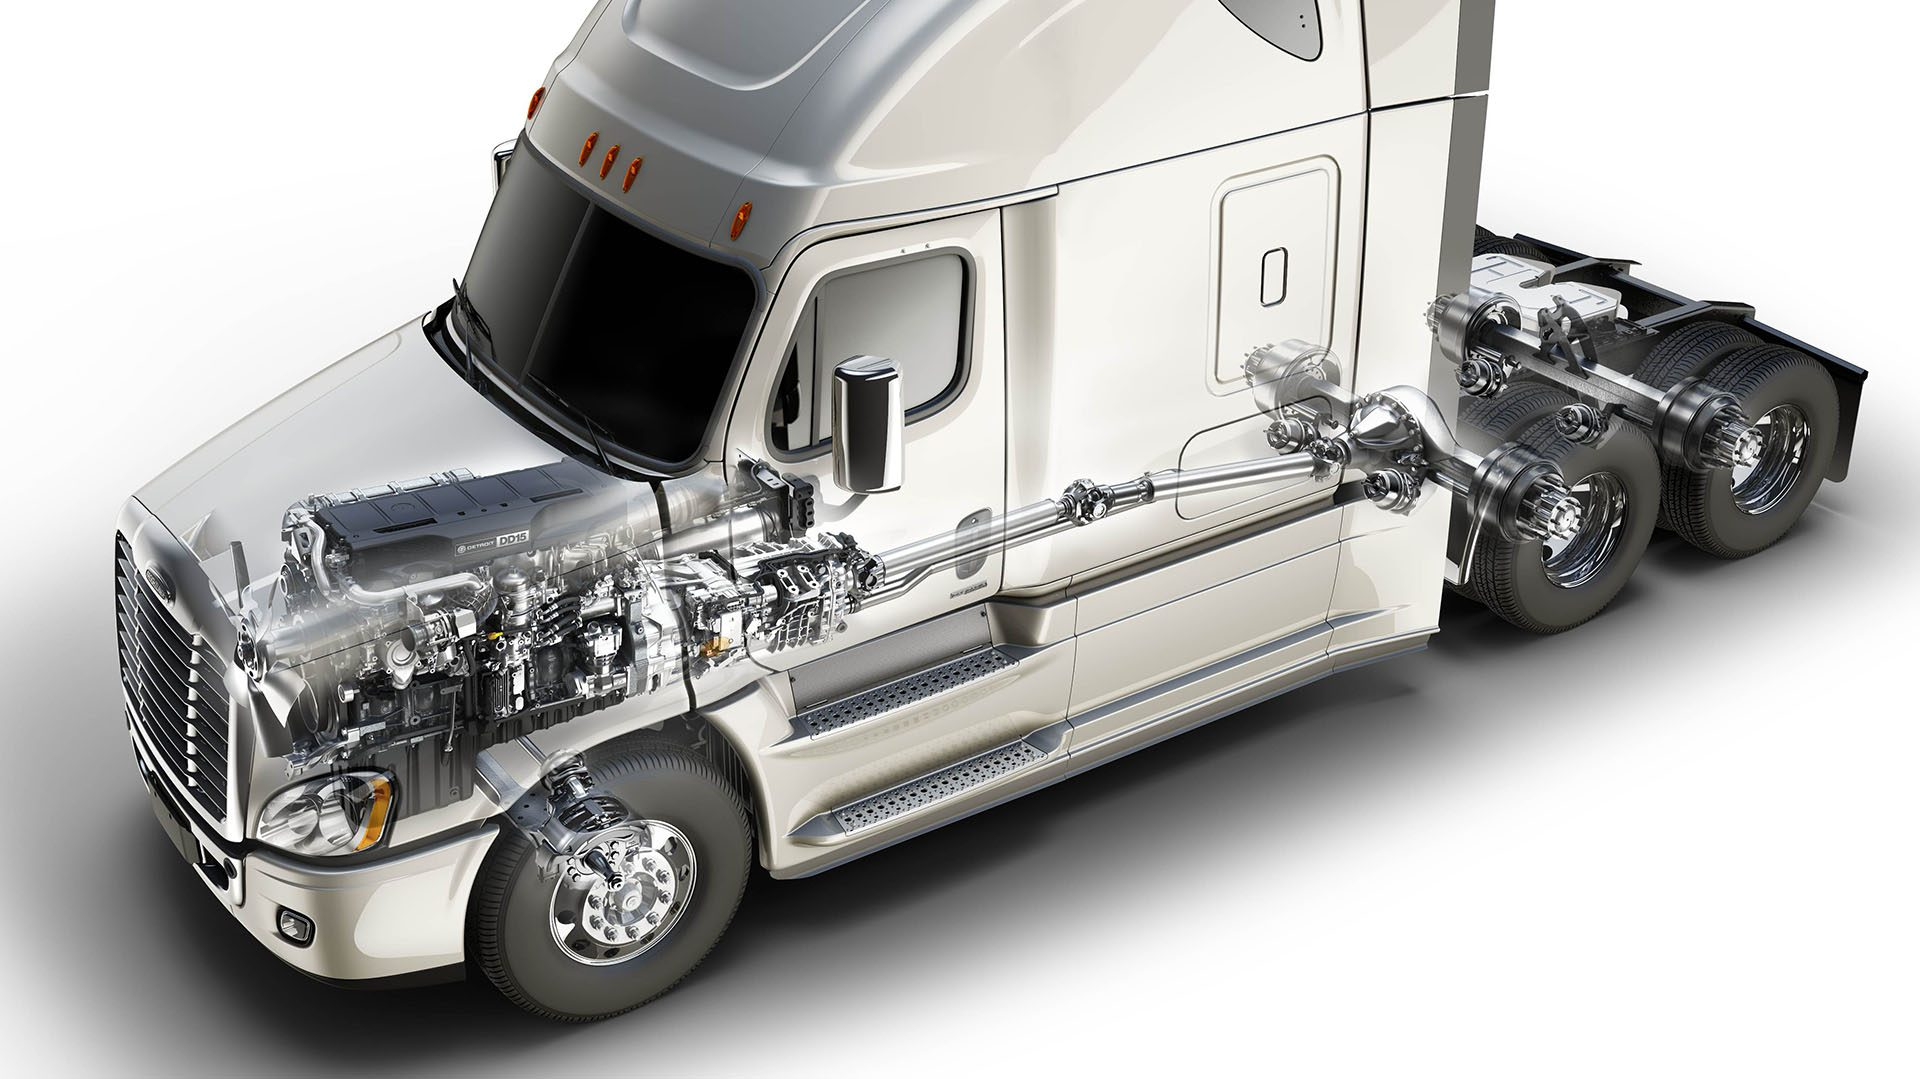 Fe Ridge T furthermore Fe Camaro T as well New Cascadia X likewise Min Liquidplatium besides Rd T. on freightliner body parts